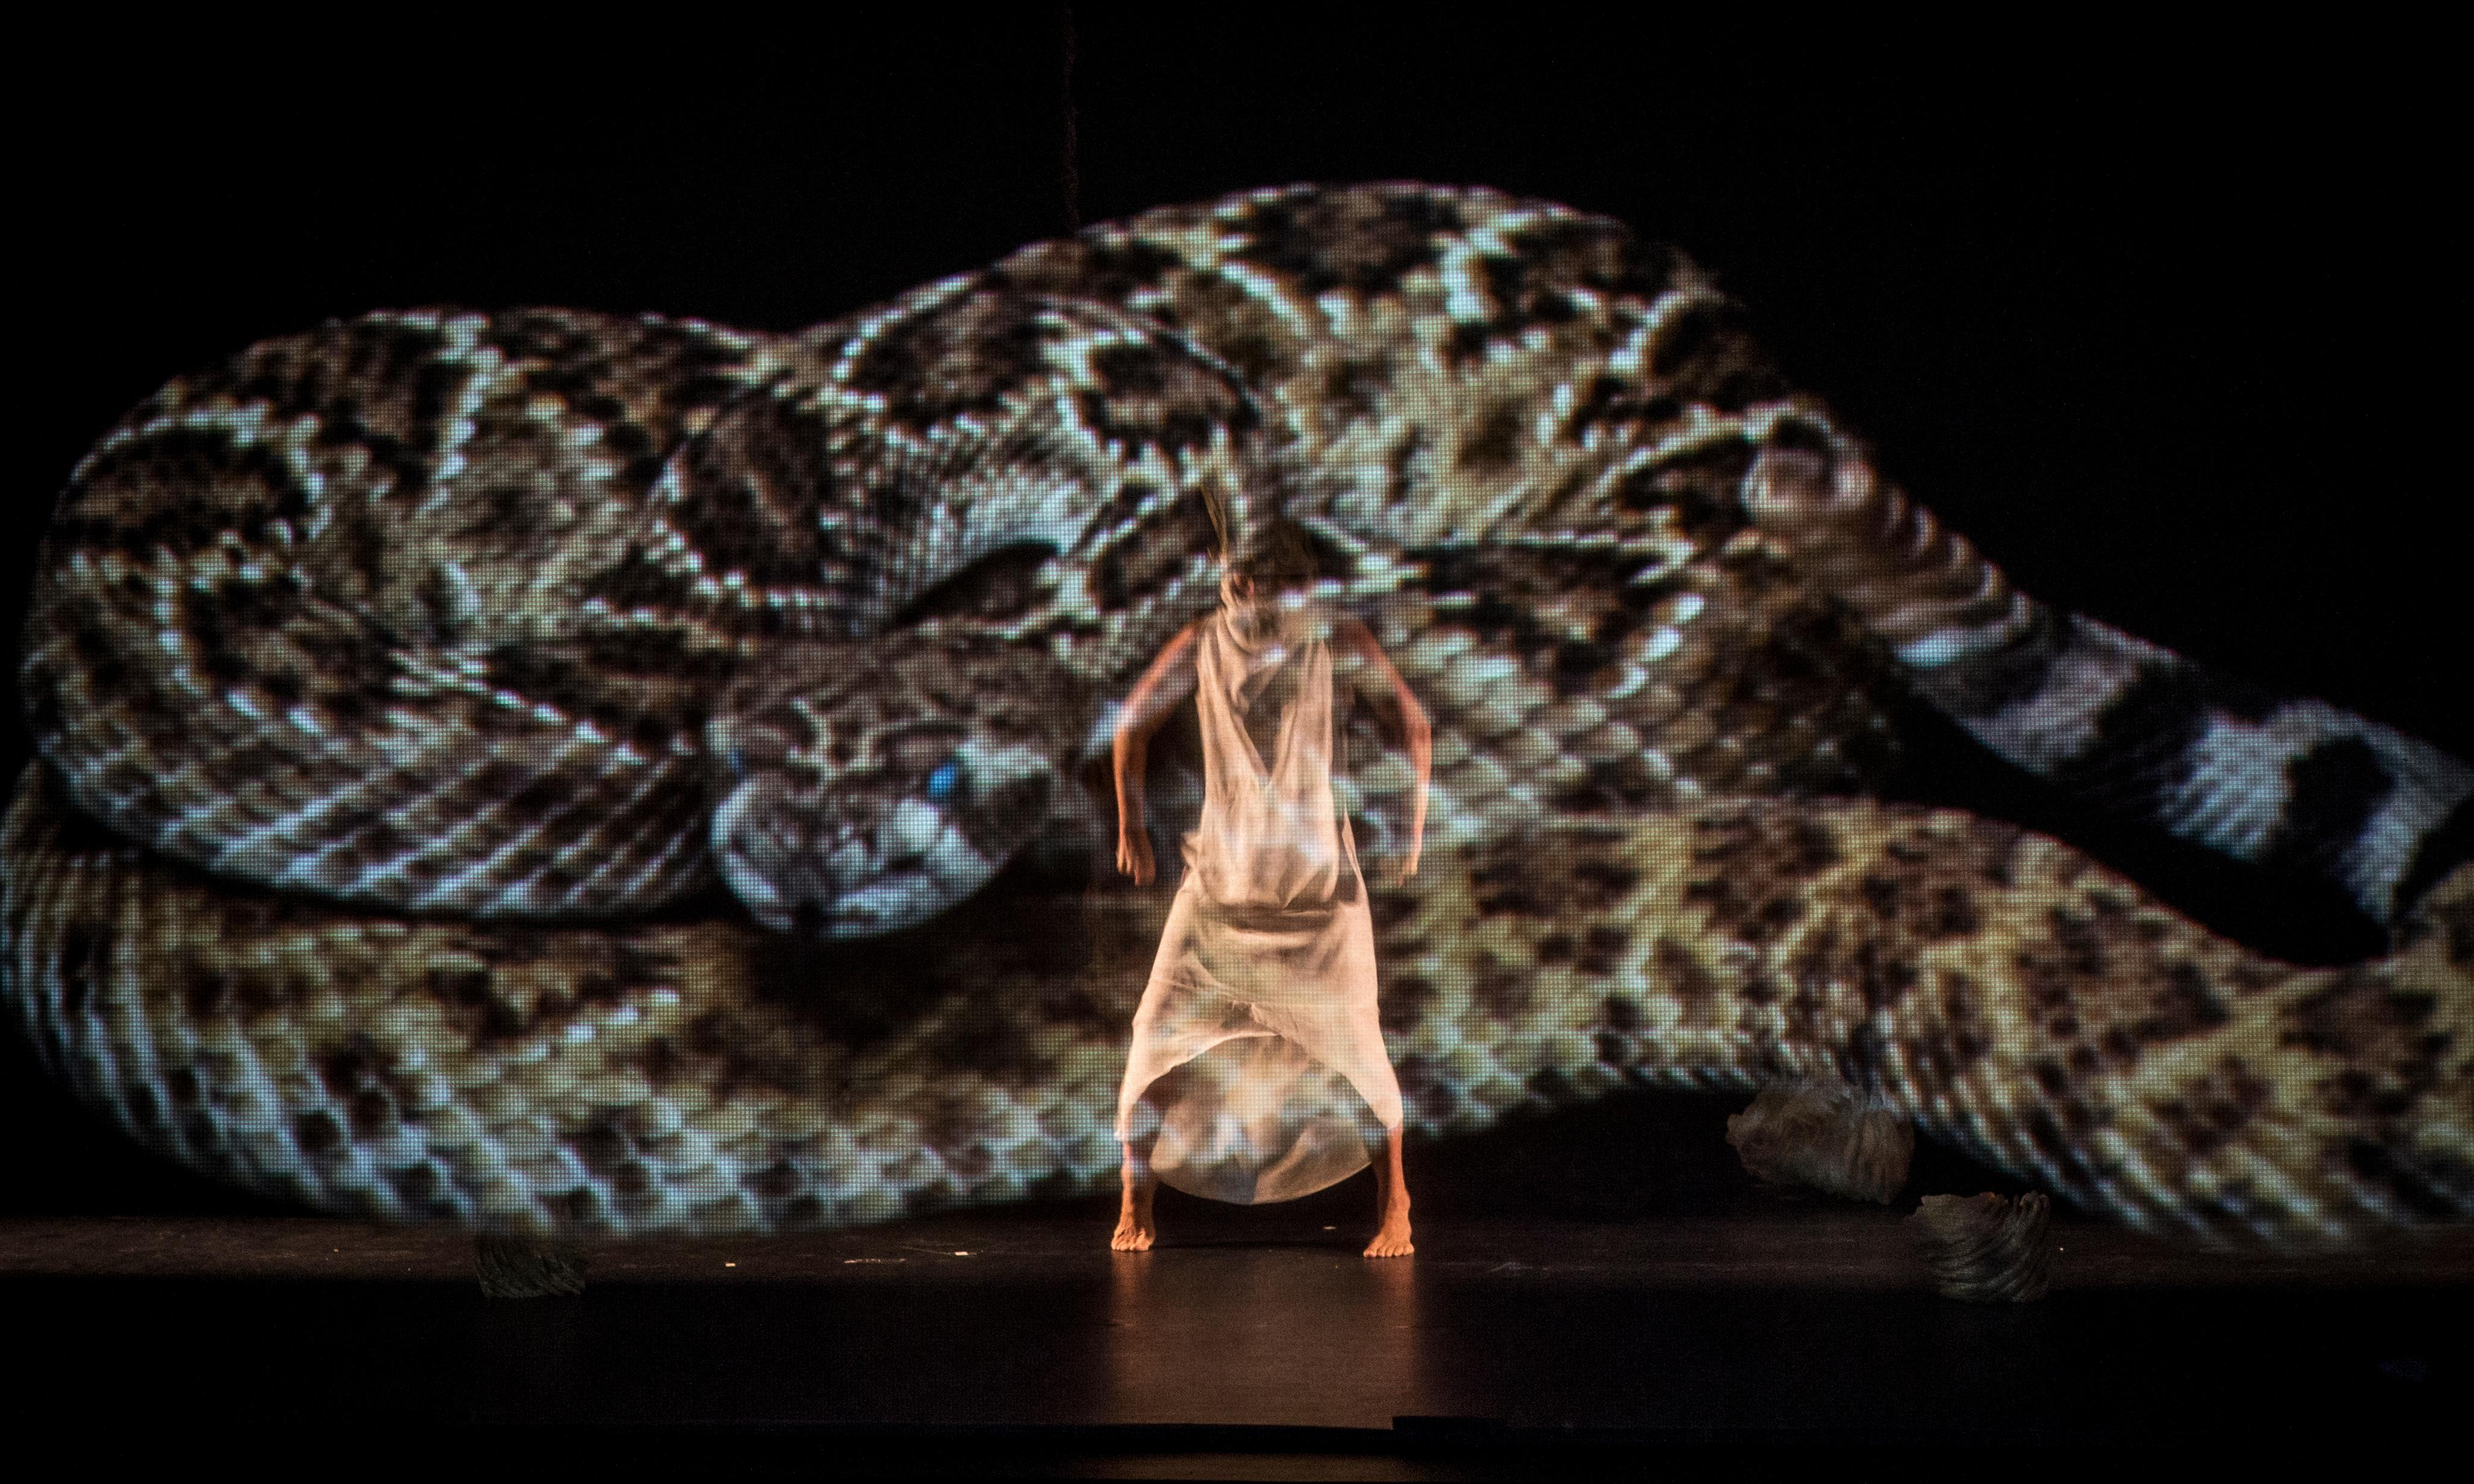 Psychedelics, dance steps and giant snakes: inside the ayahuasca show